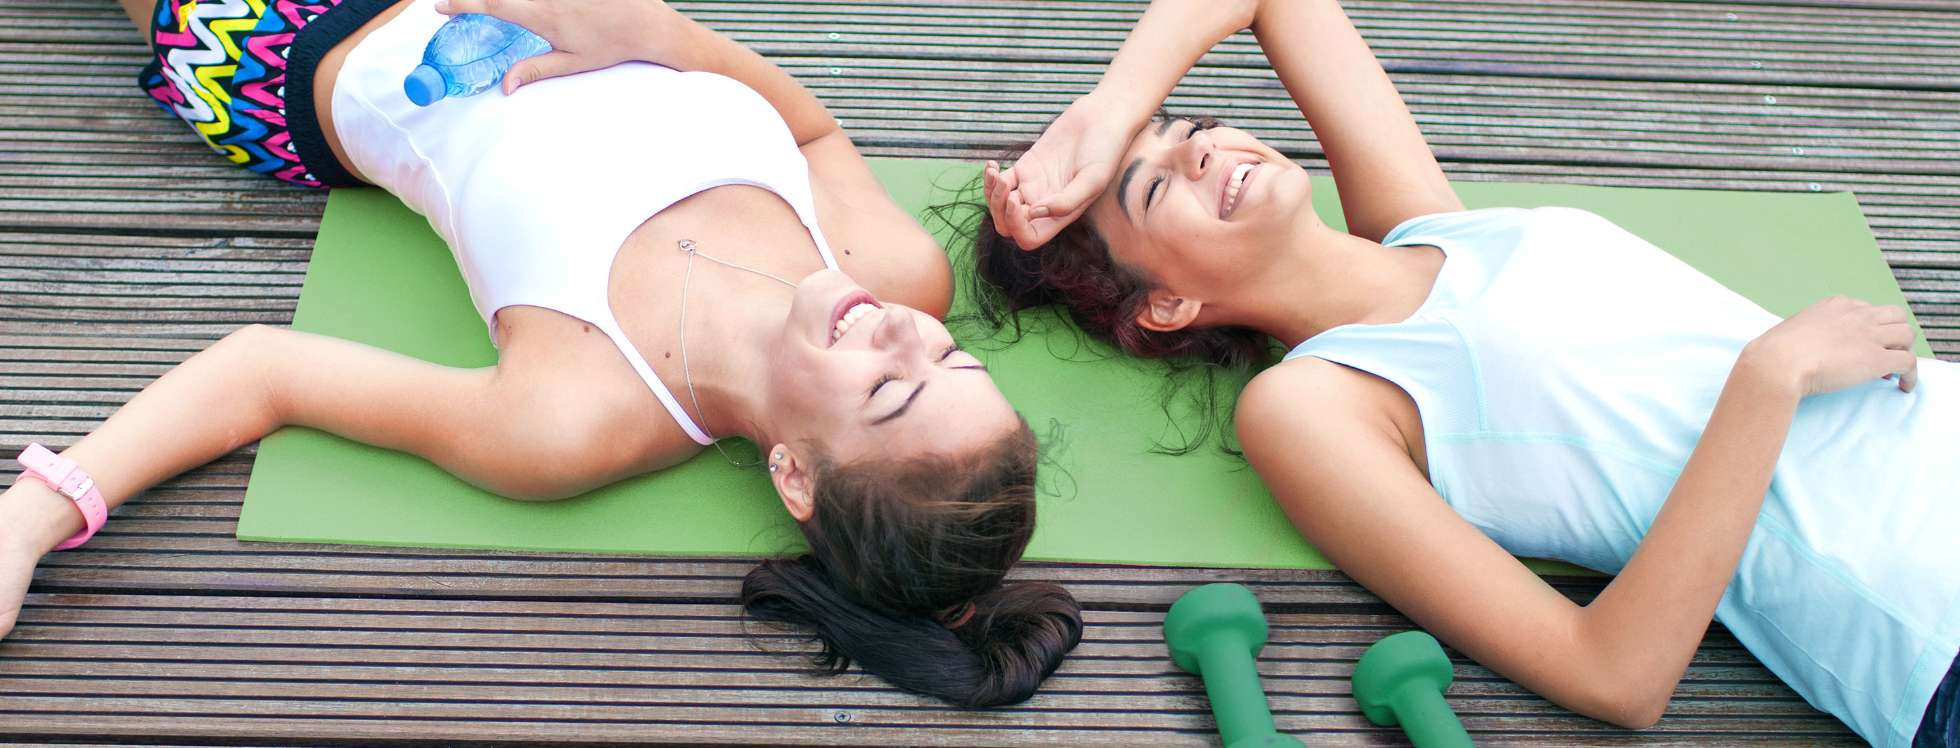 Two smiling girls lying on an exercise mat